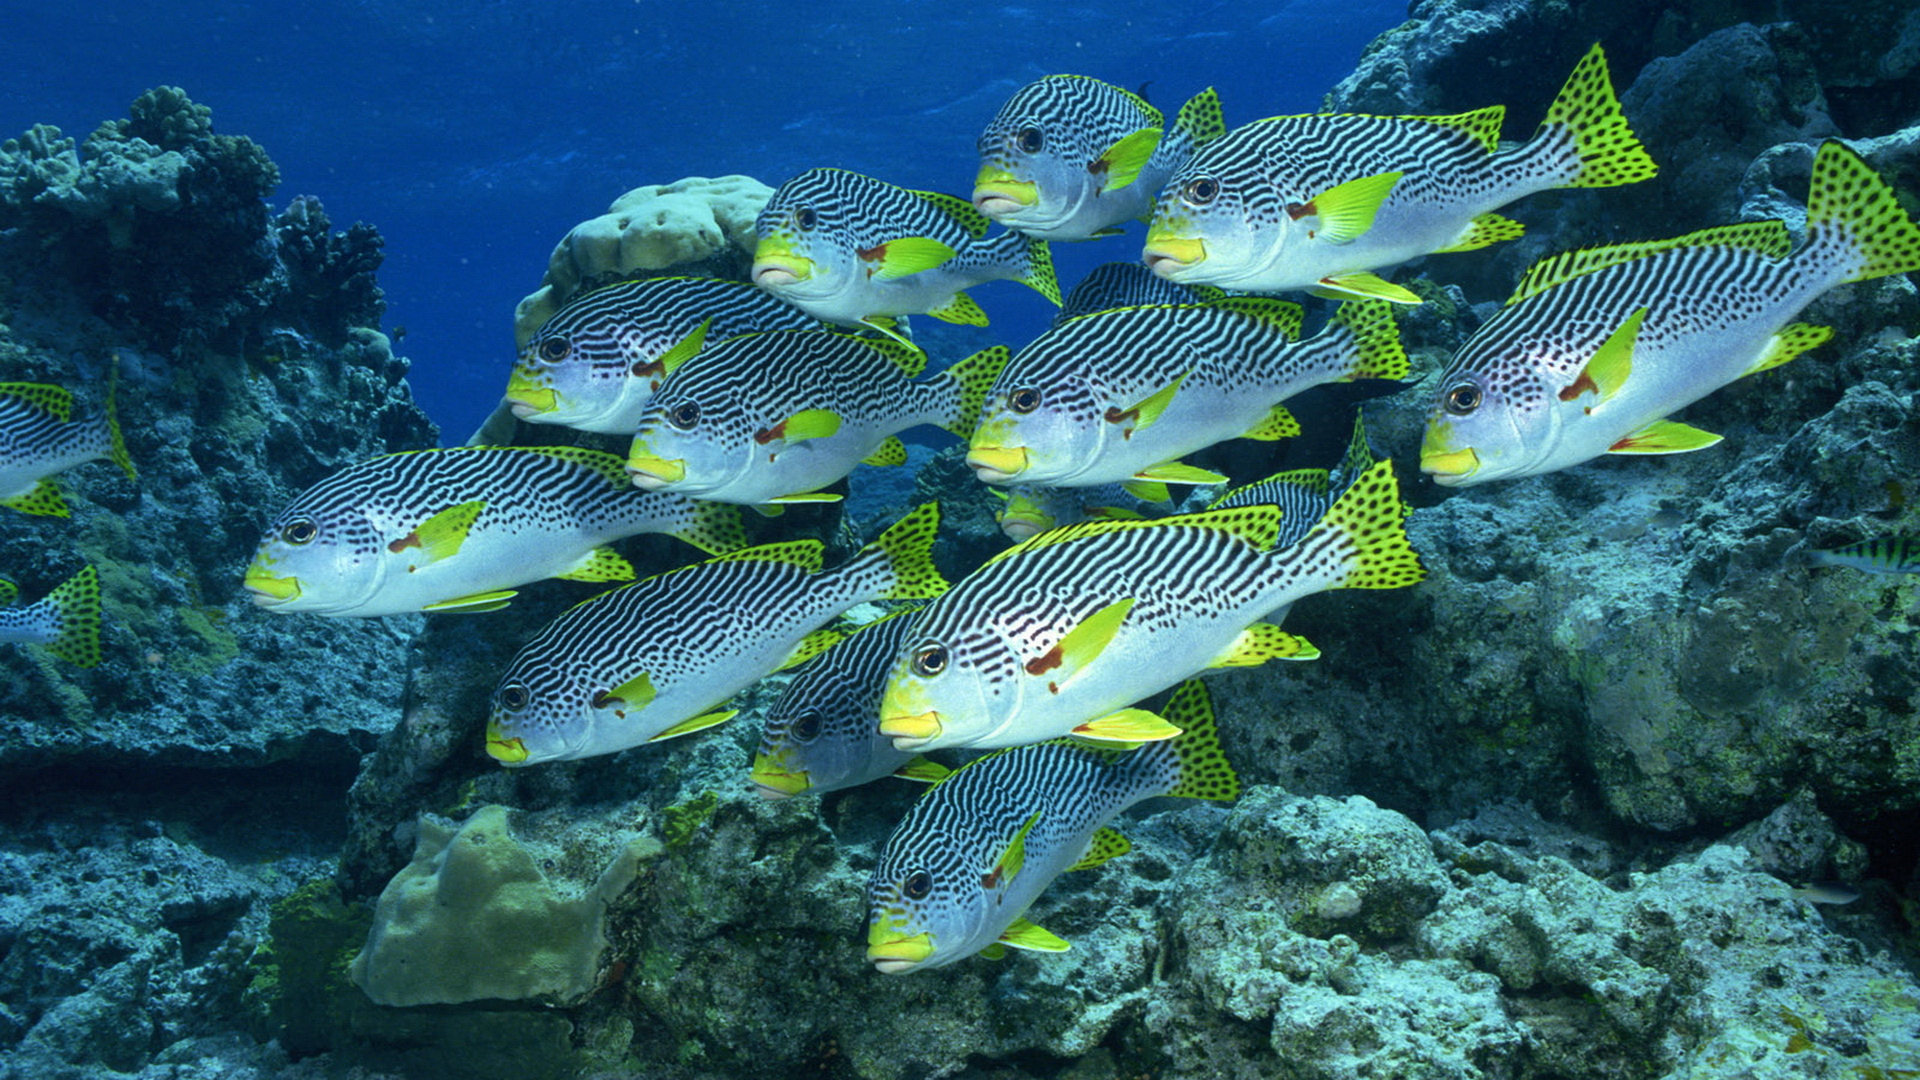 Fish Wallpaper Undersea 10741 Wallpaper Cool Walldiskpapercom 1920x1080